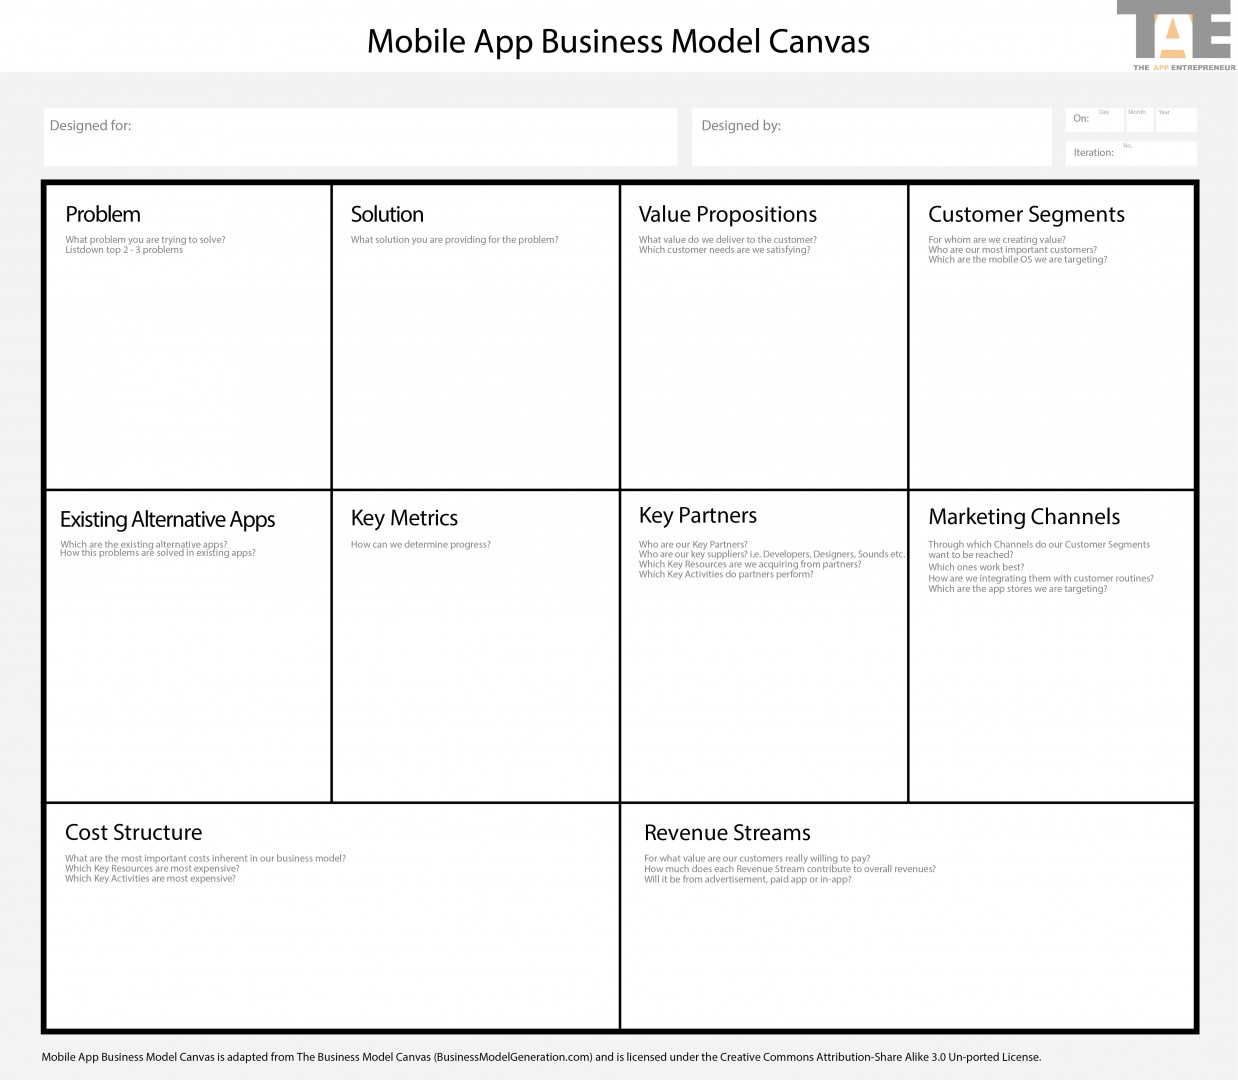 app business model canvas the app entrepreneur. Black Bedroom Furniture Sets. Home Design Ideas